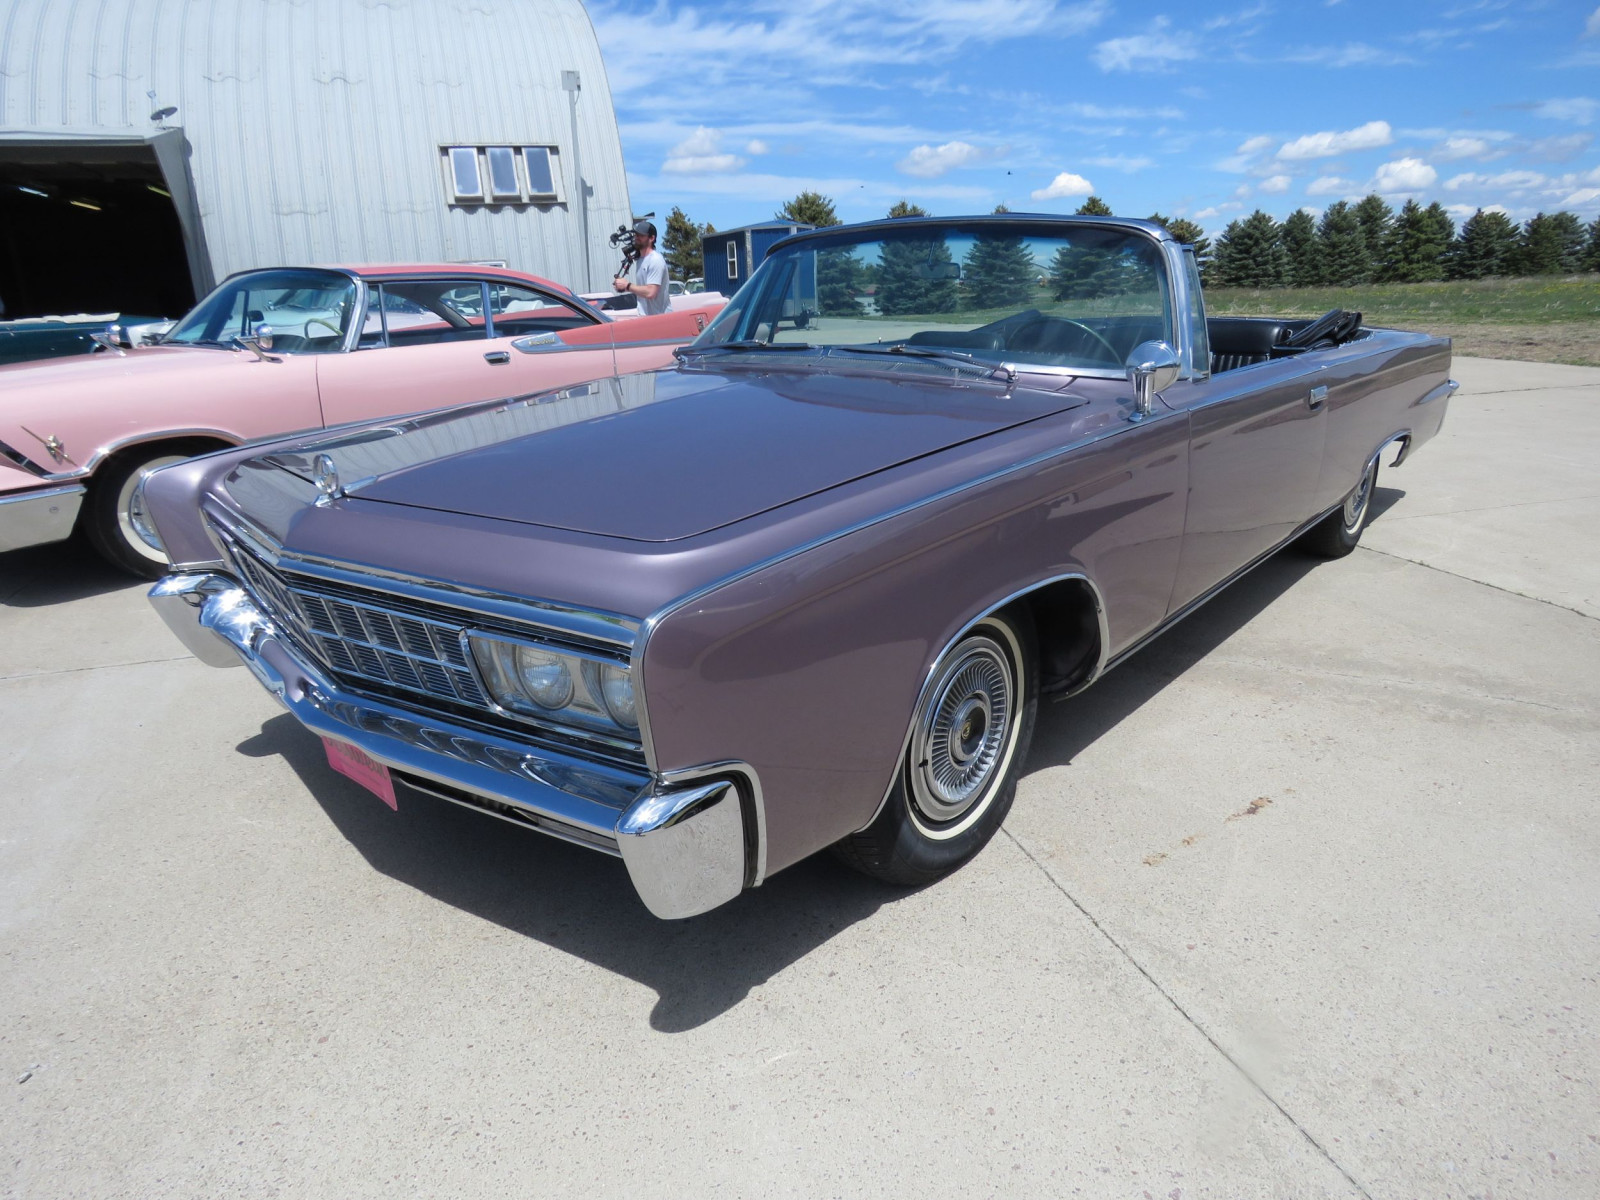 1966 Chrysler Imperial Crown Convertible - Image 1